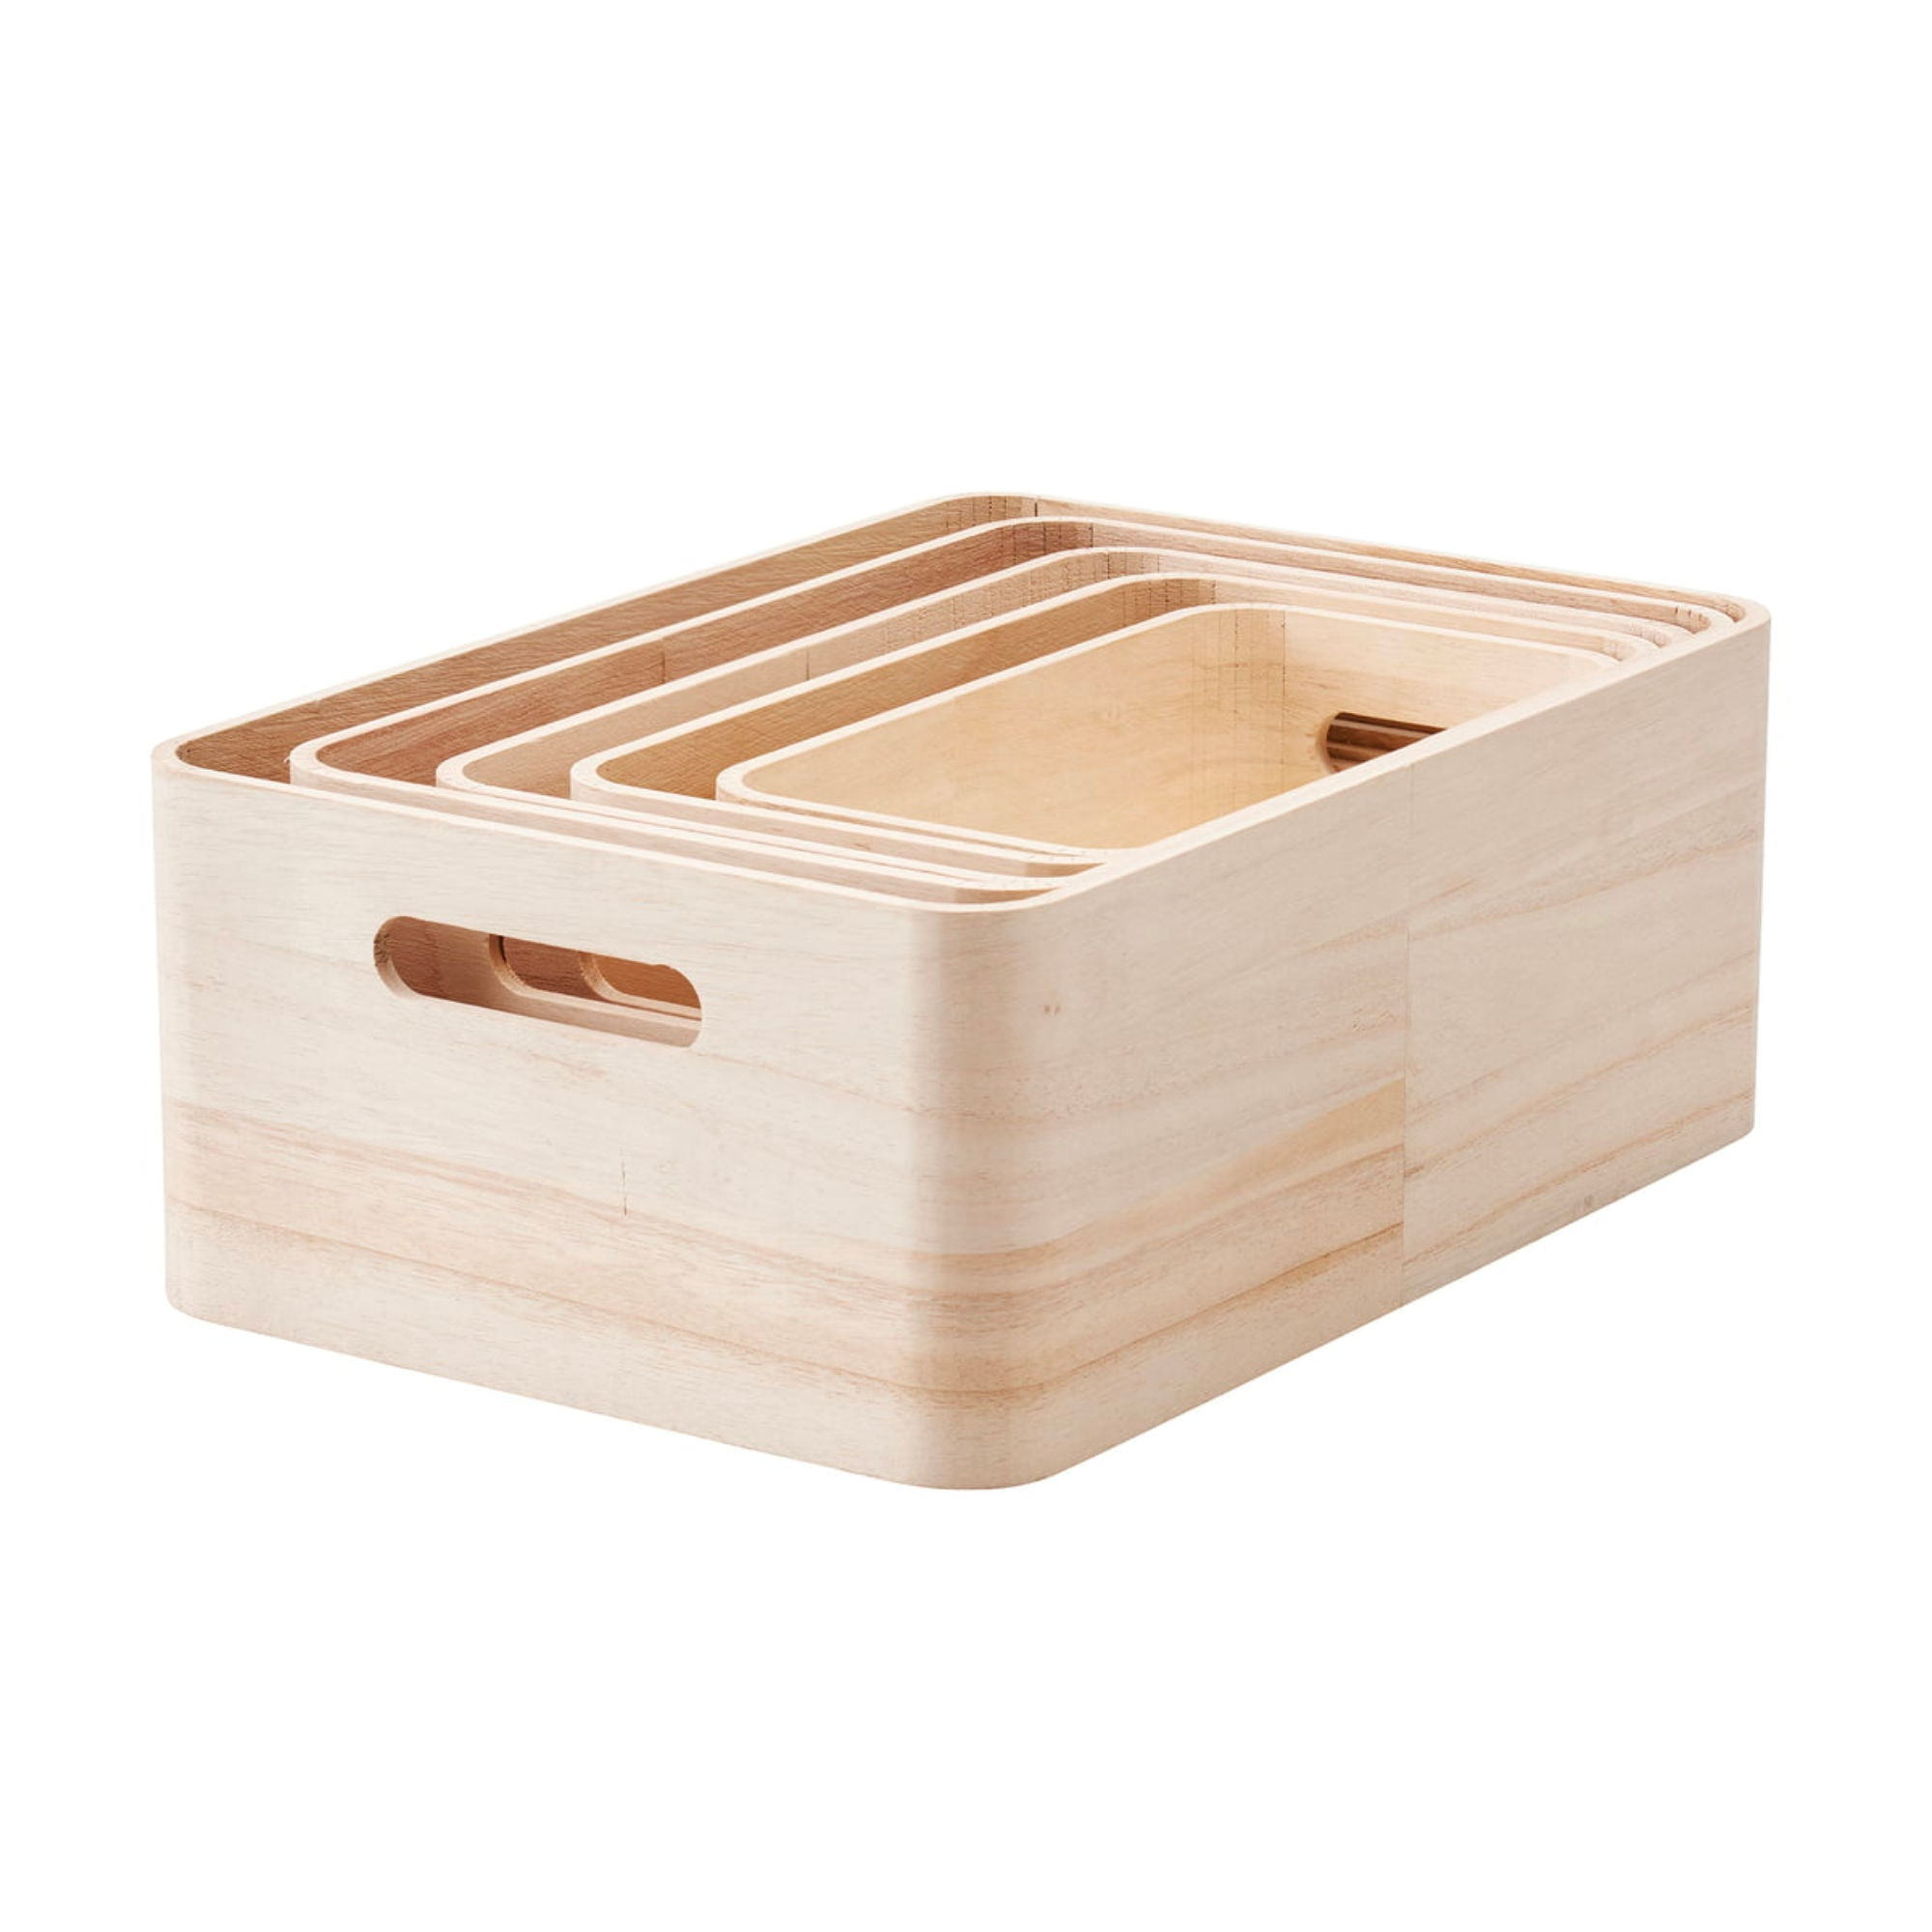 Stelton Save-It Storages Box 5 Pcs